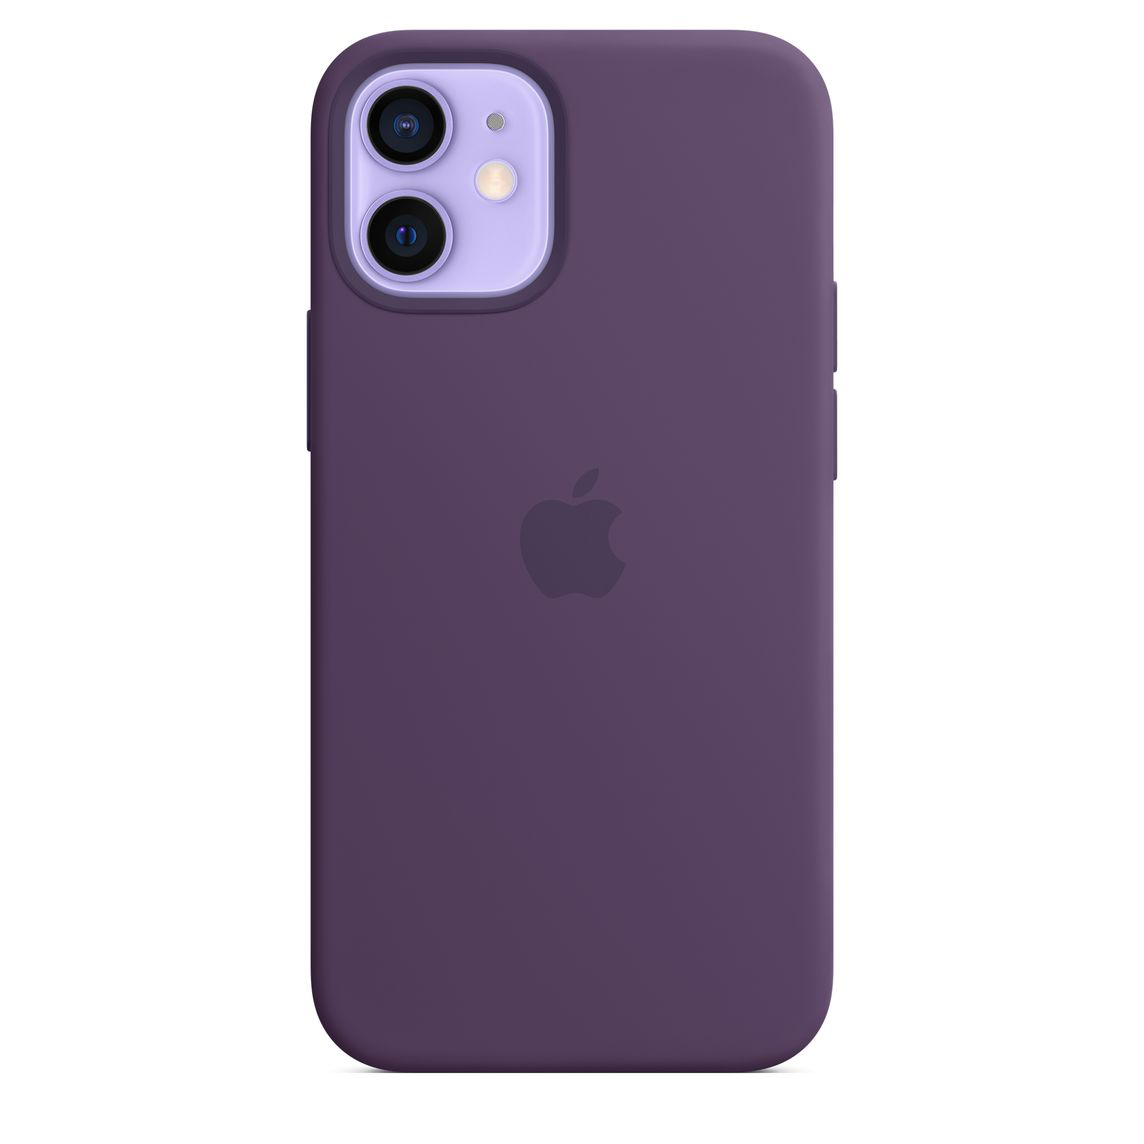 Apple iPhone 12 mini Silicone Case with MagSafe Amethyst